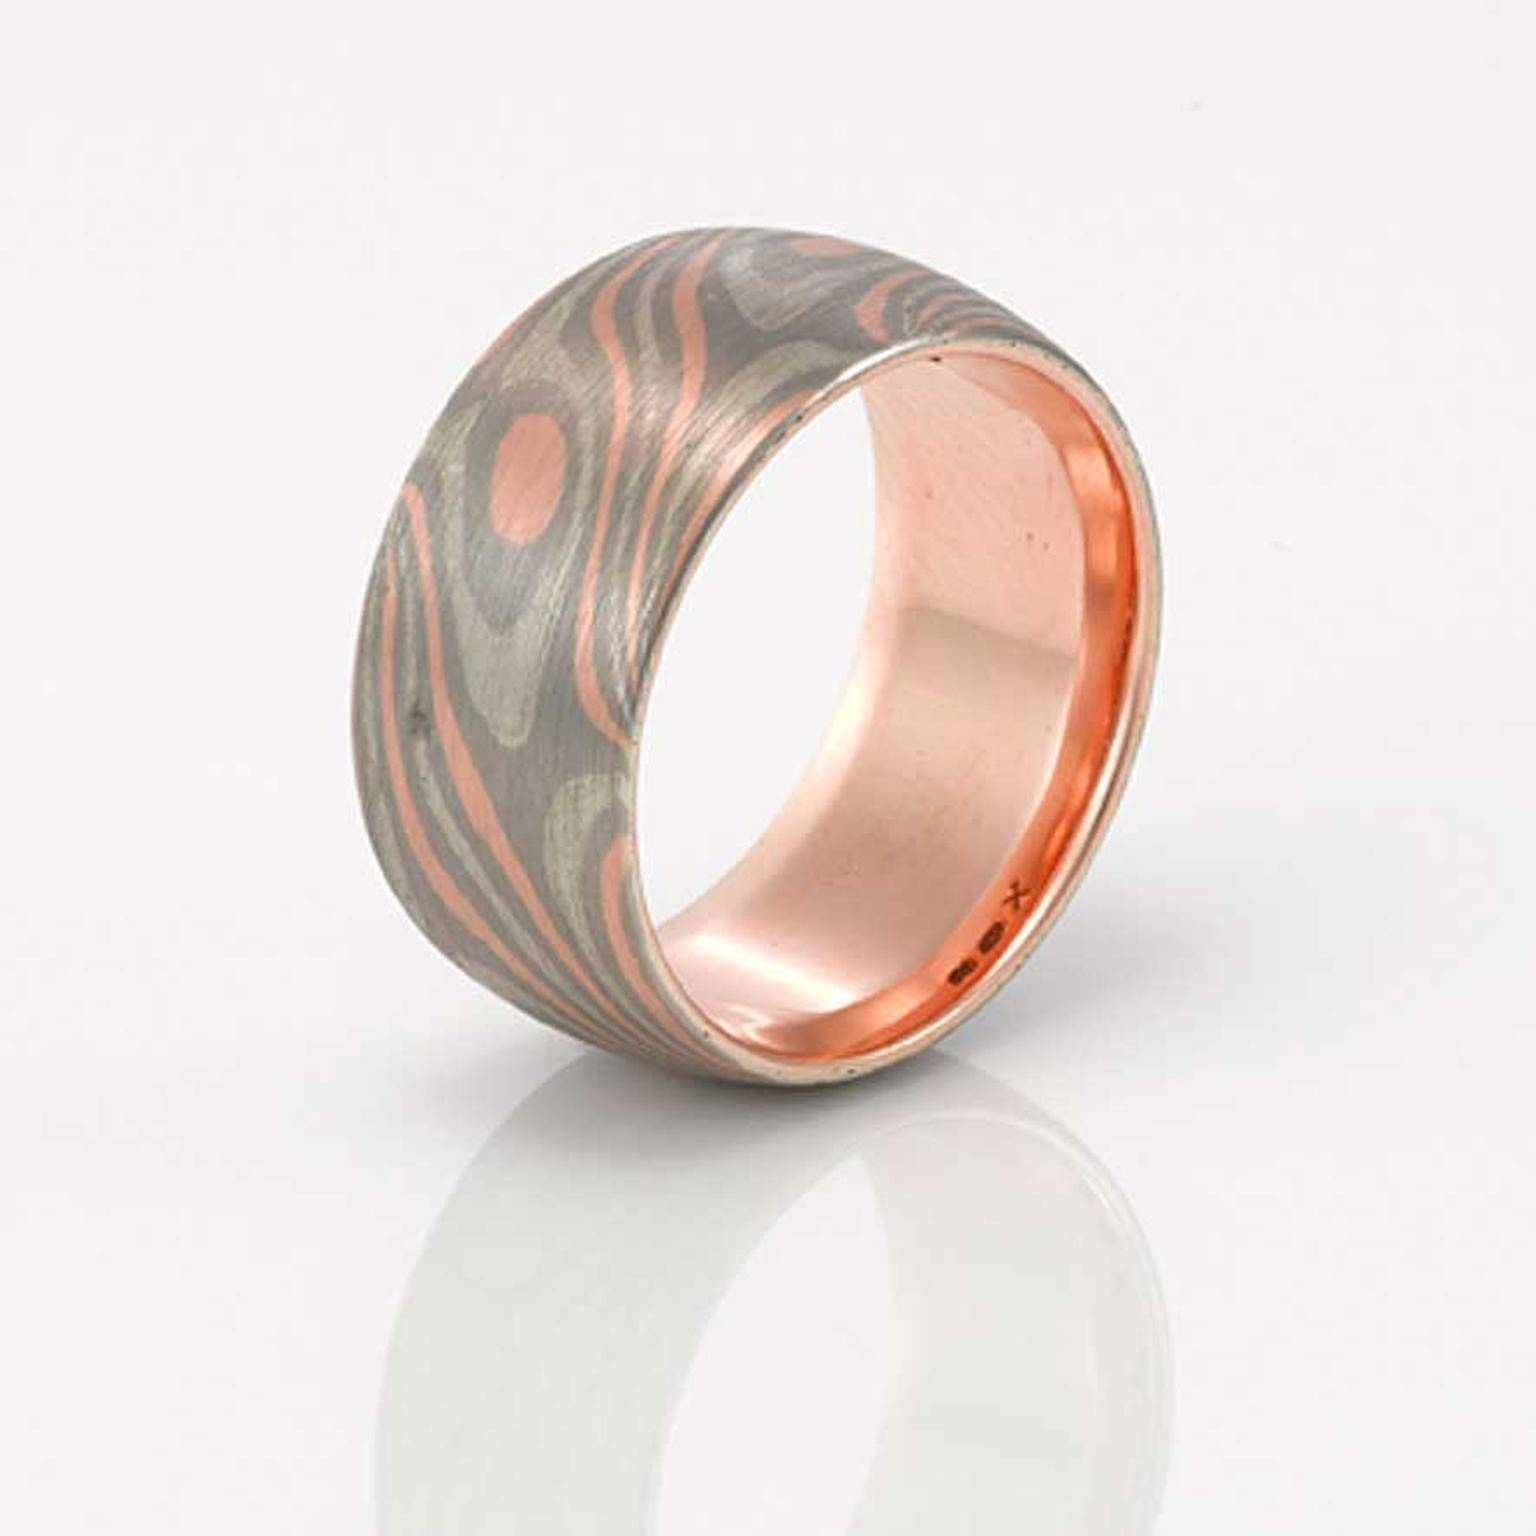 Apollo Men's Wedding Ring In Rose Gold, Palladium And Silver Inside Silver And Gold Mens Wedding Bands (View 3 of 15)